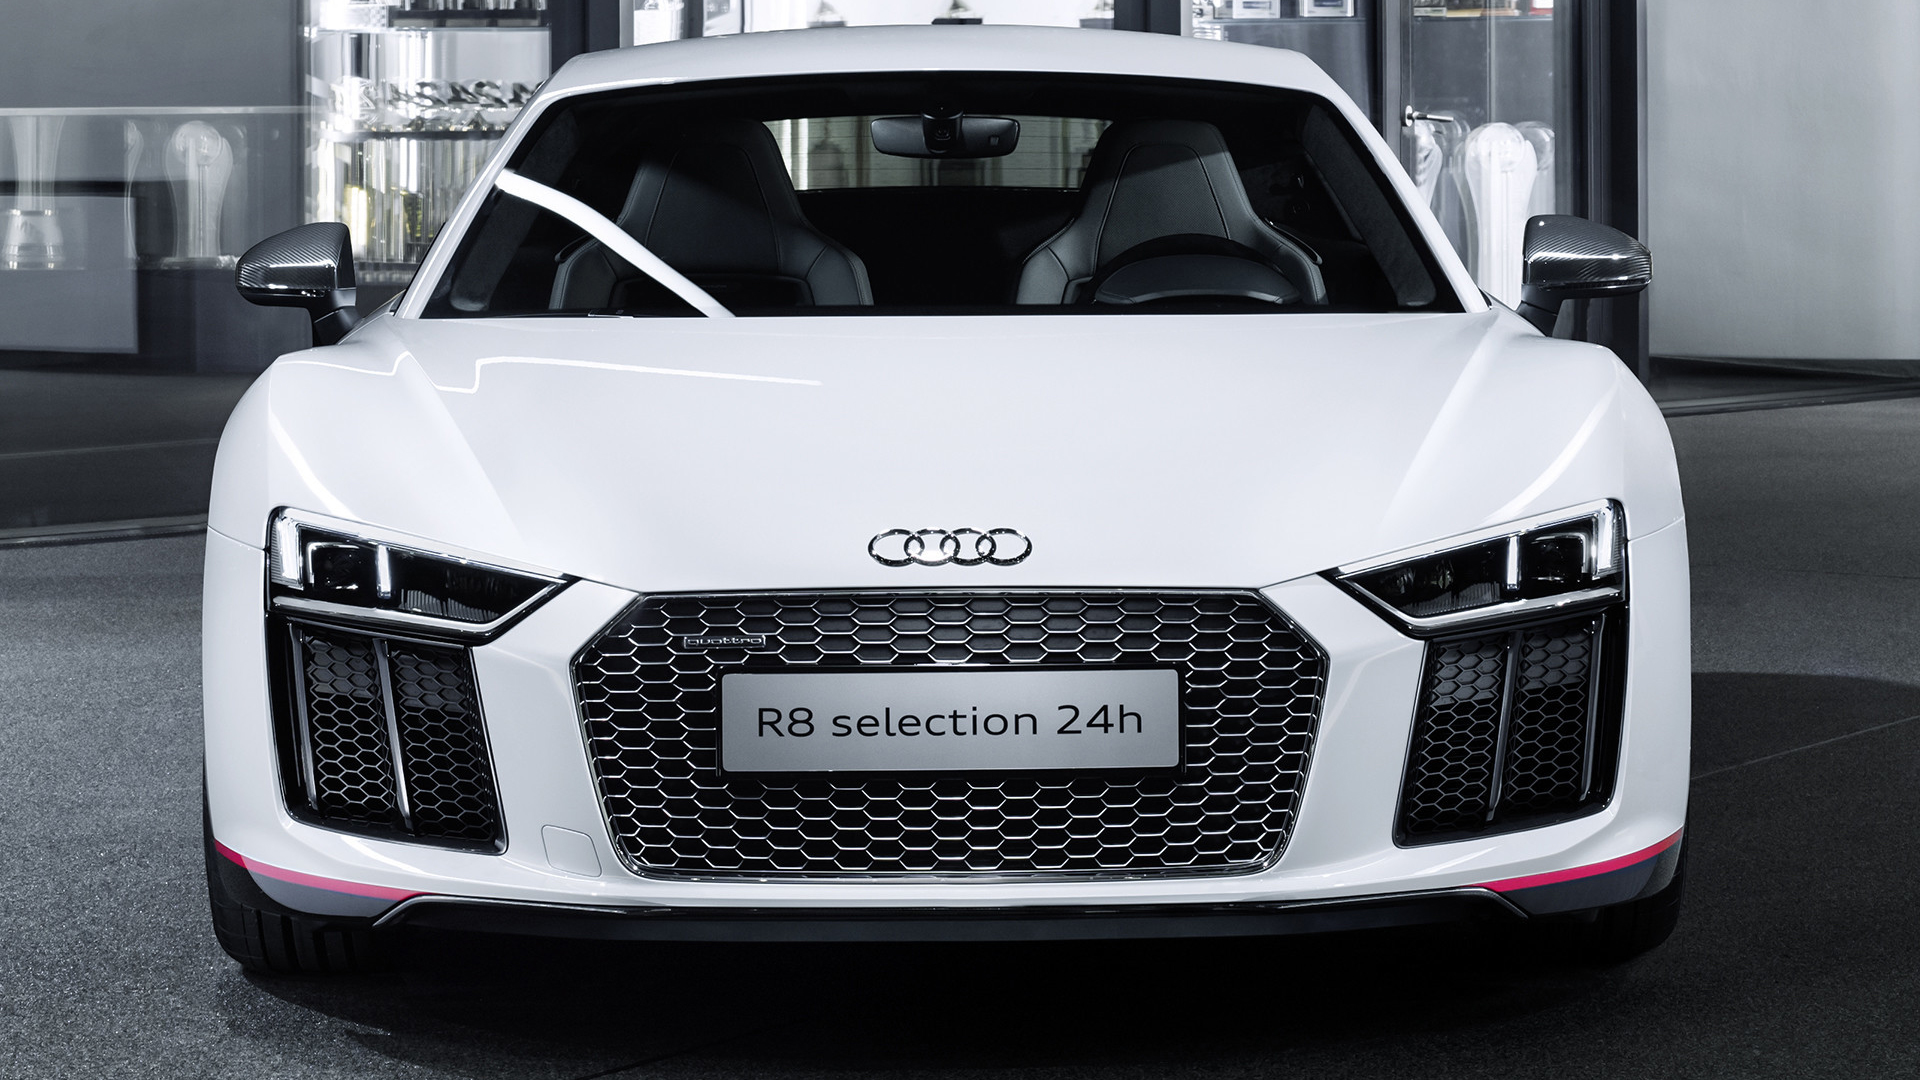 Audi R8 V10 selection 24h - 2016 - front / avant - zoom